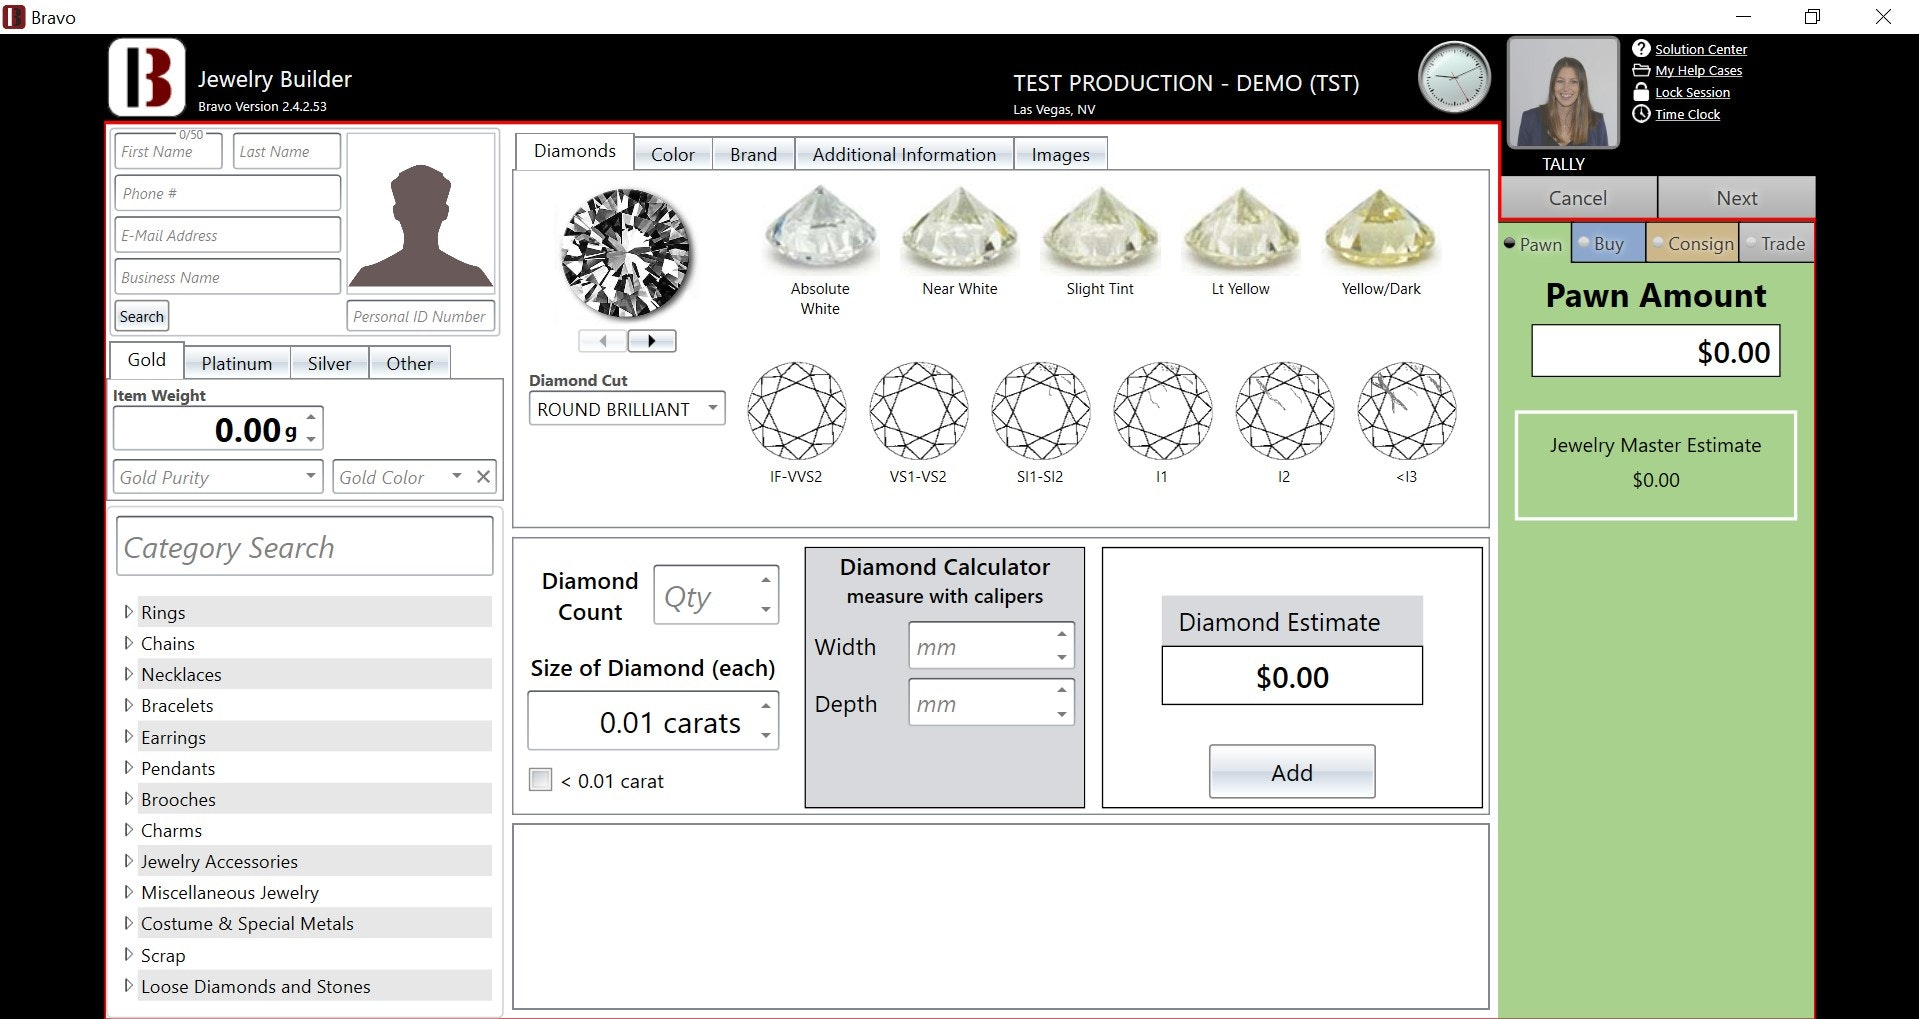 Jewelry Estimator